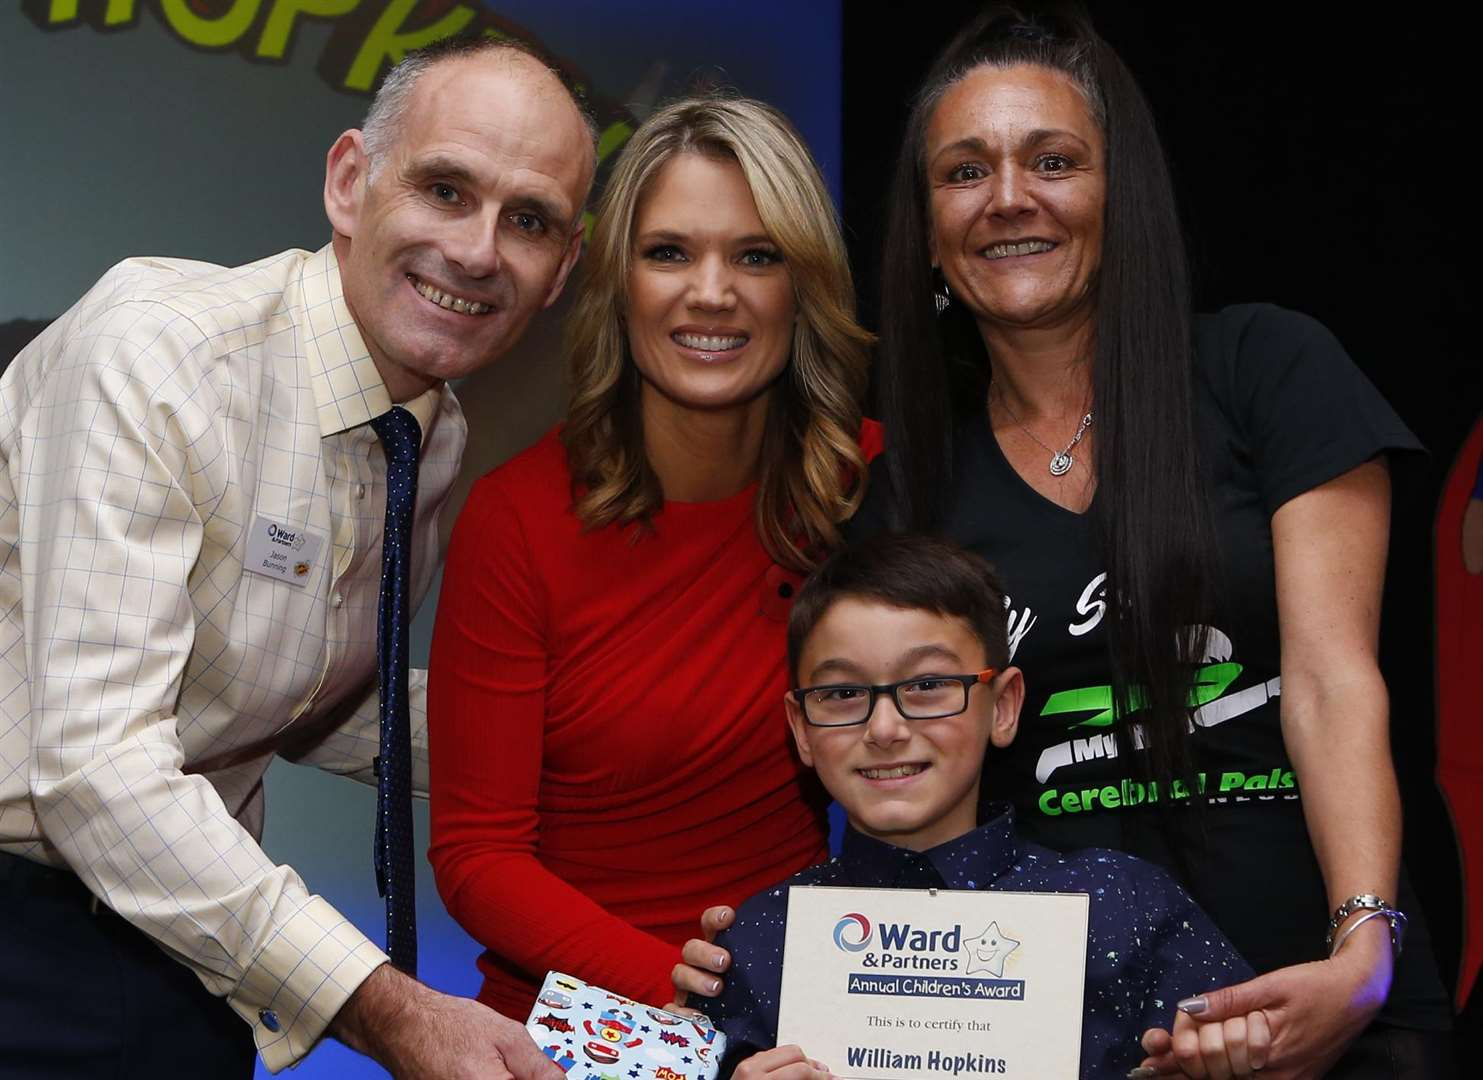 Ward and Partners Annual Children's Awards Going for Gold winner William Hopkins with Senior Director of Lettings Jason Bunning & Charlotte Hawkins..Mercure Great Danes Hotel in Maidstone. Picture: Andy Jones.